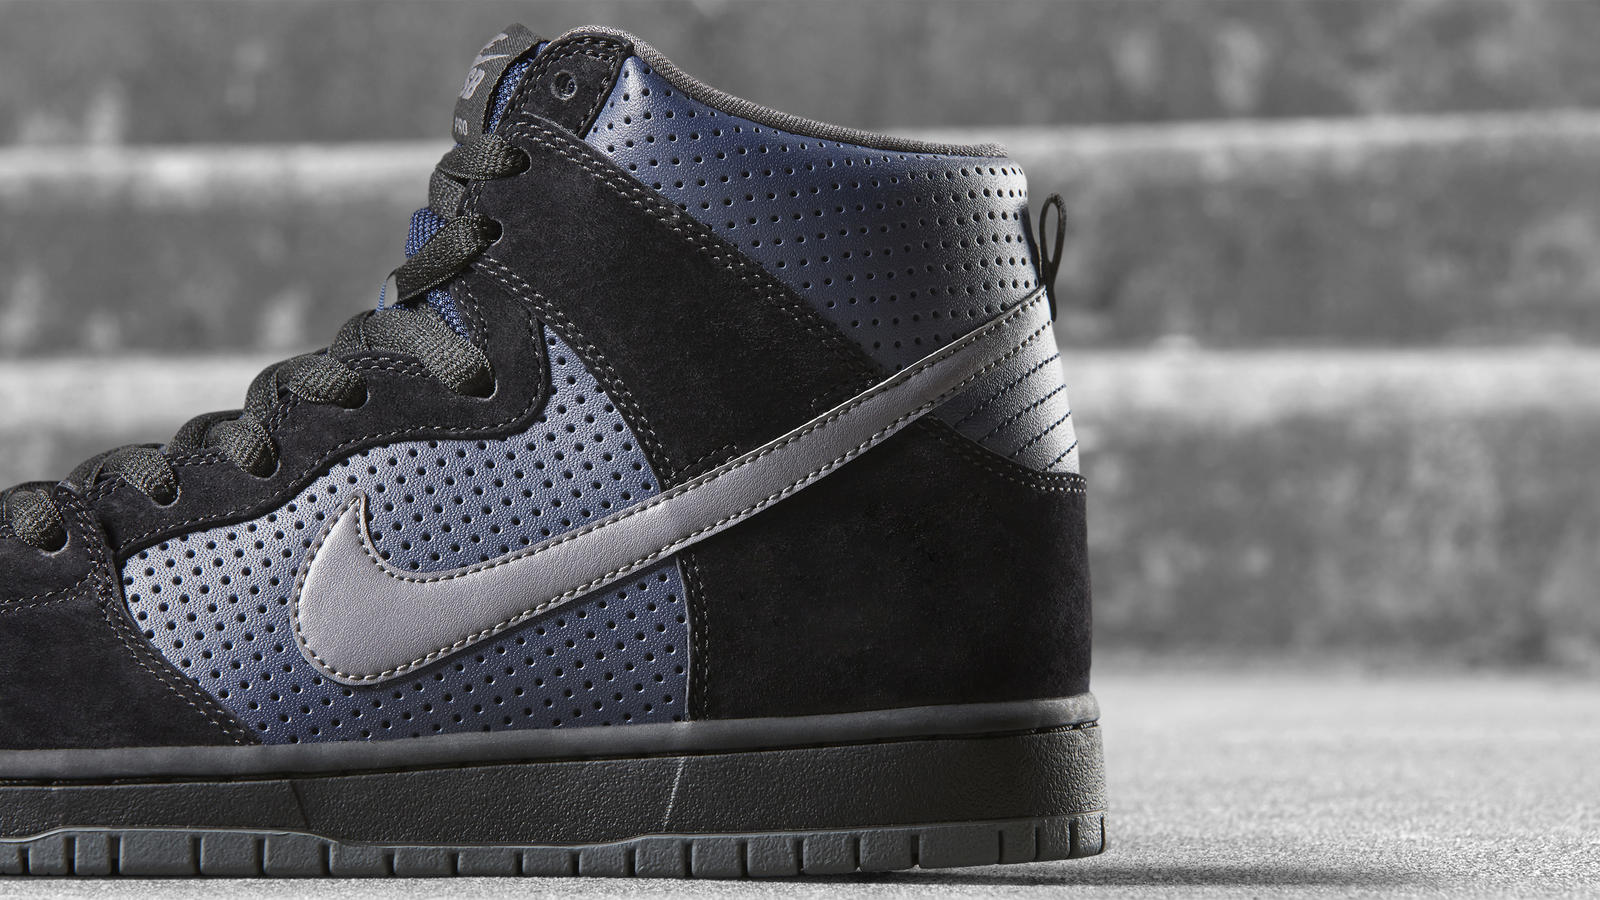 170320 footwear sb blk navy dunk 0166 hd 1600